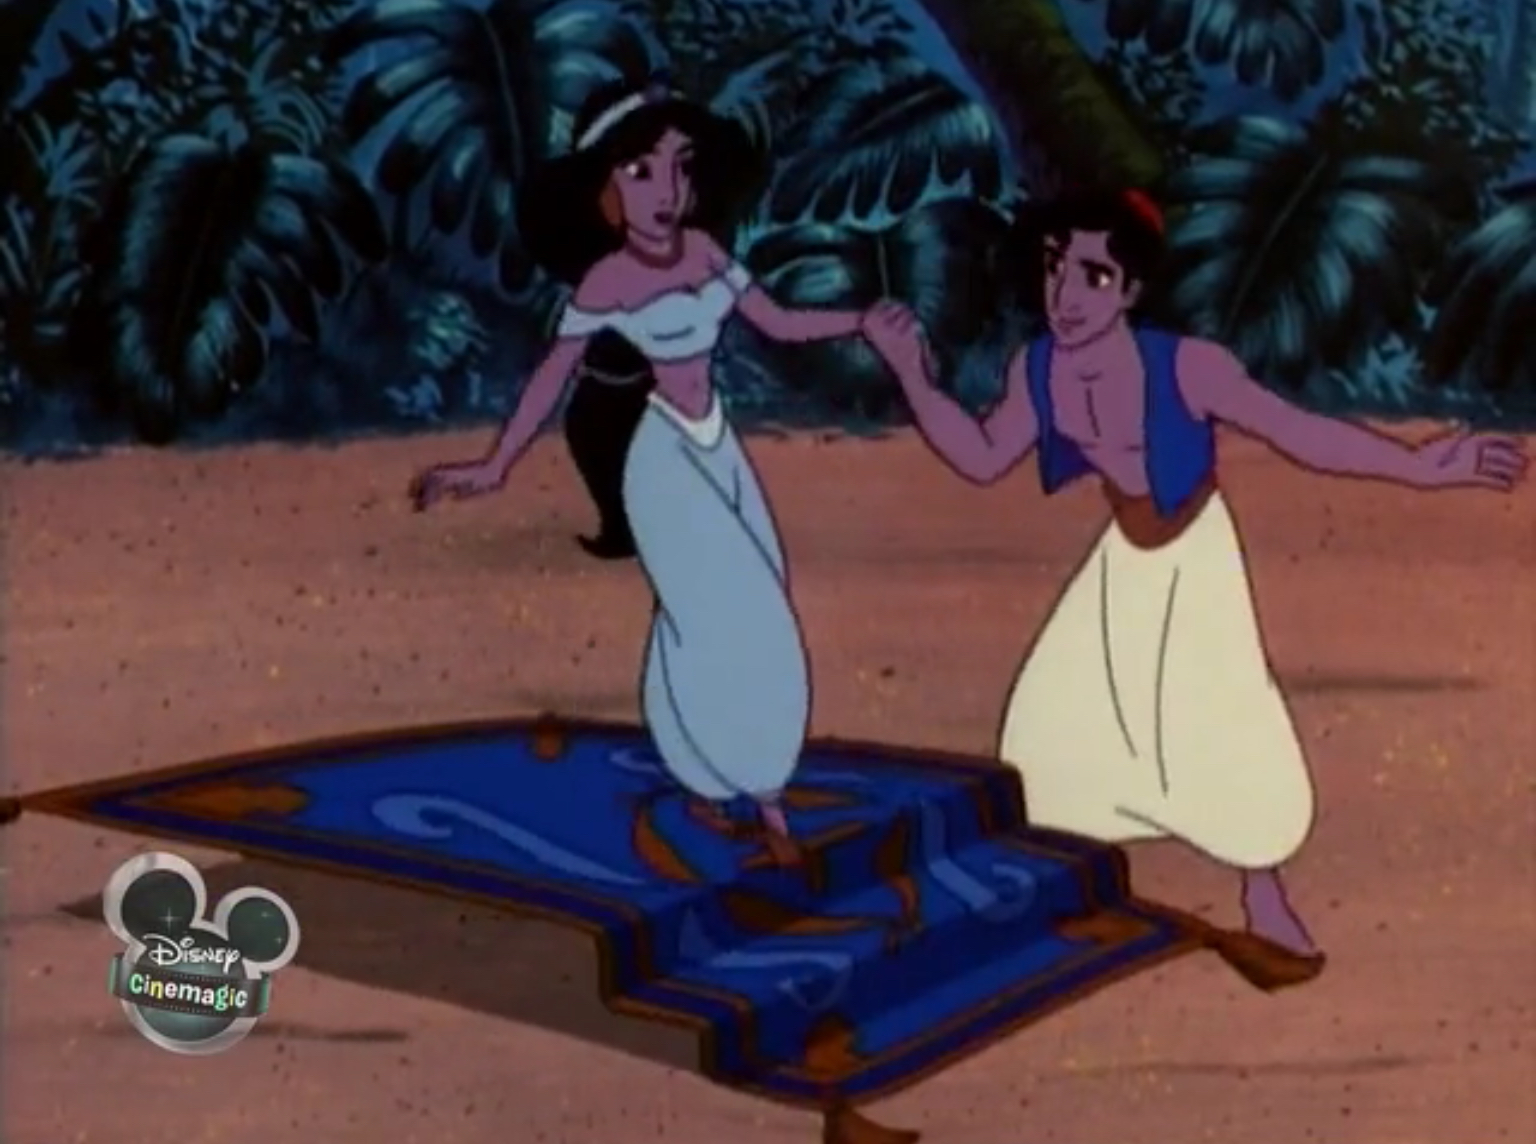 File:Aladdin & Jasmine - Moonlight Madness (2).jpg